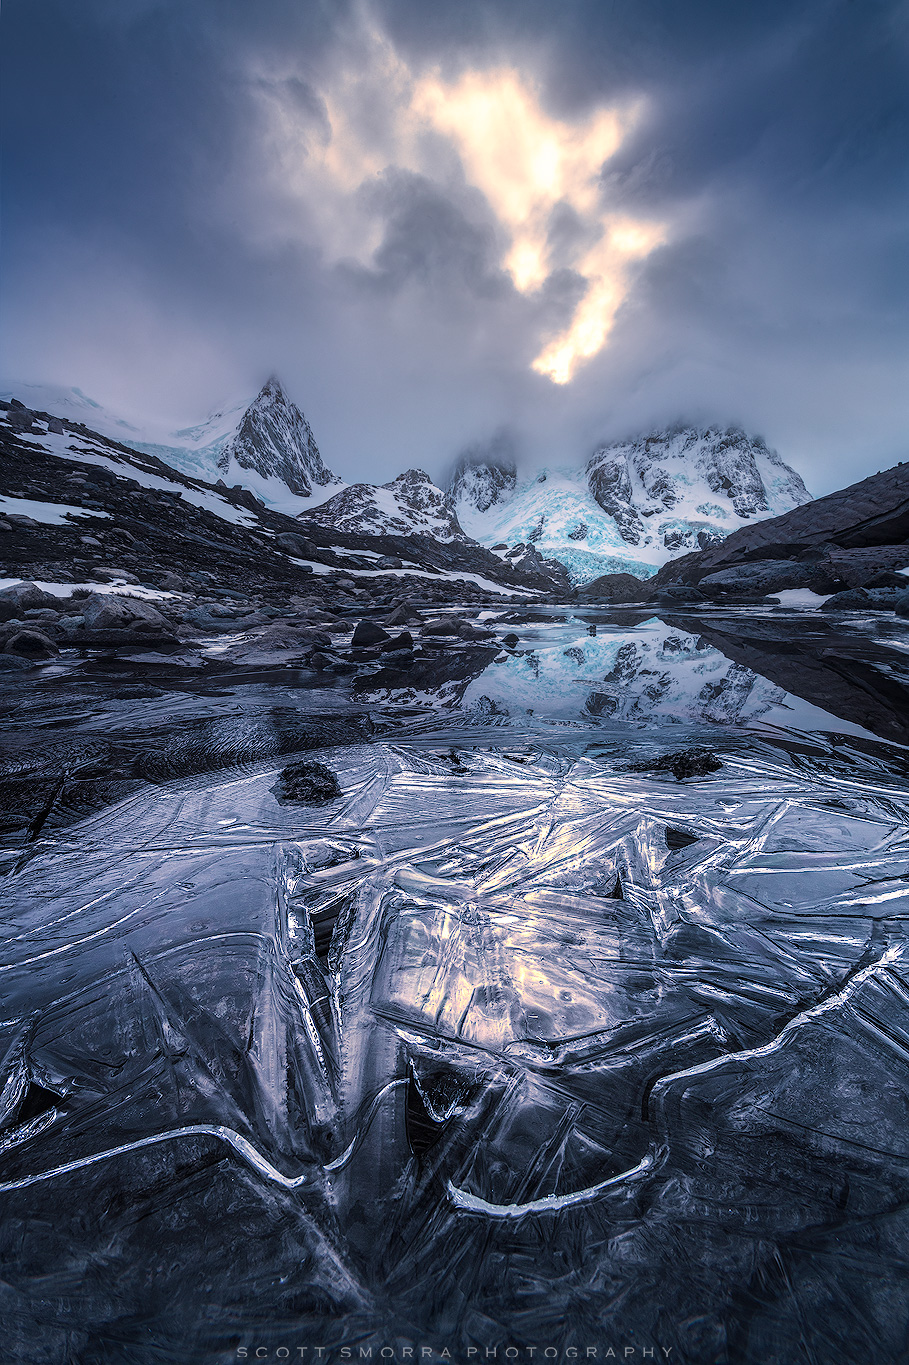 Fine Art Limited Edition of 50 - Ice patterns on the surface of a small alpine tarn lead back to glaciers and towering peaks...